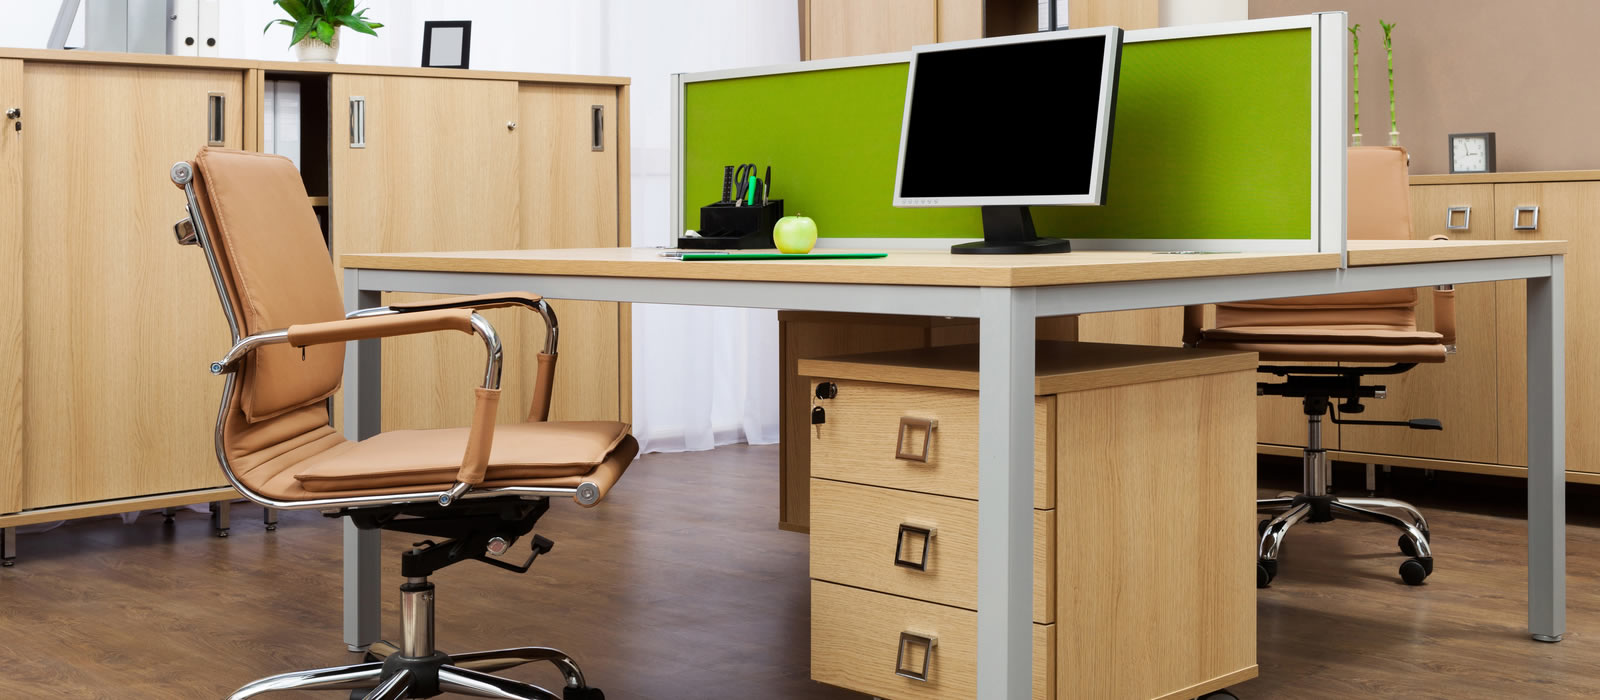 Banner image for Furniture and Ergonomic Office Chairs